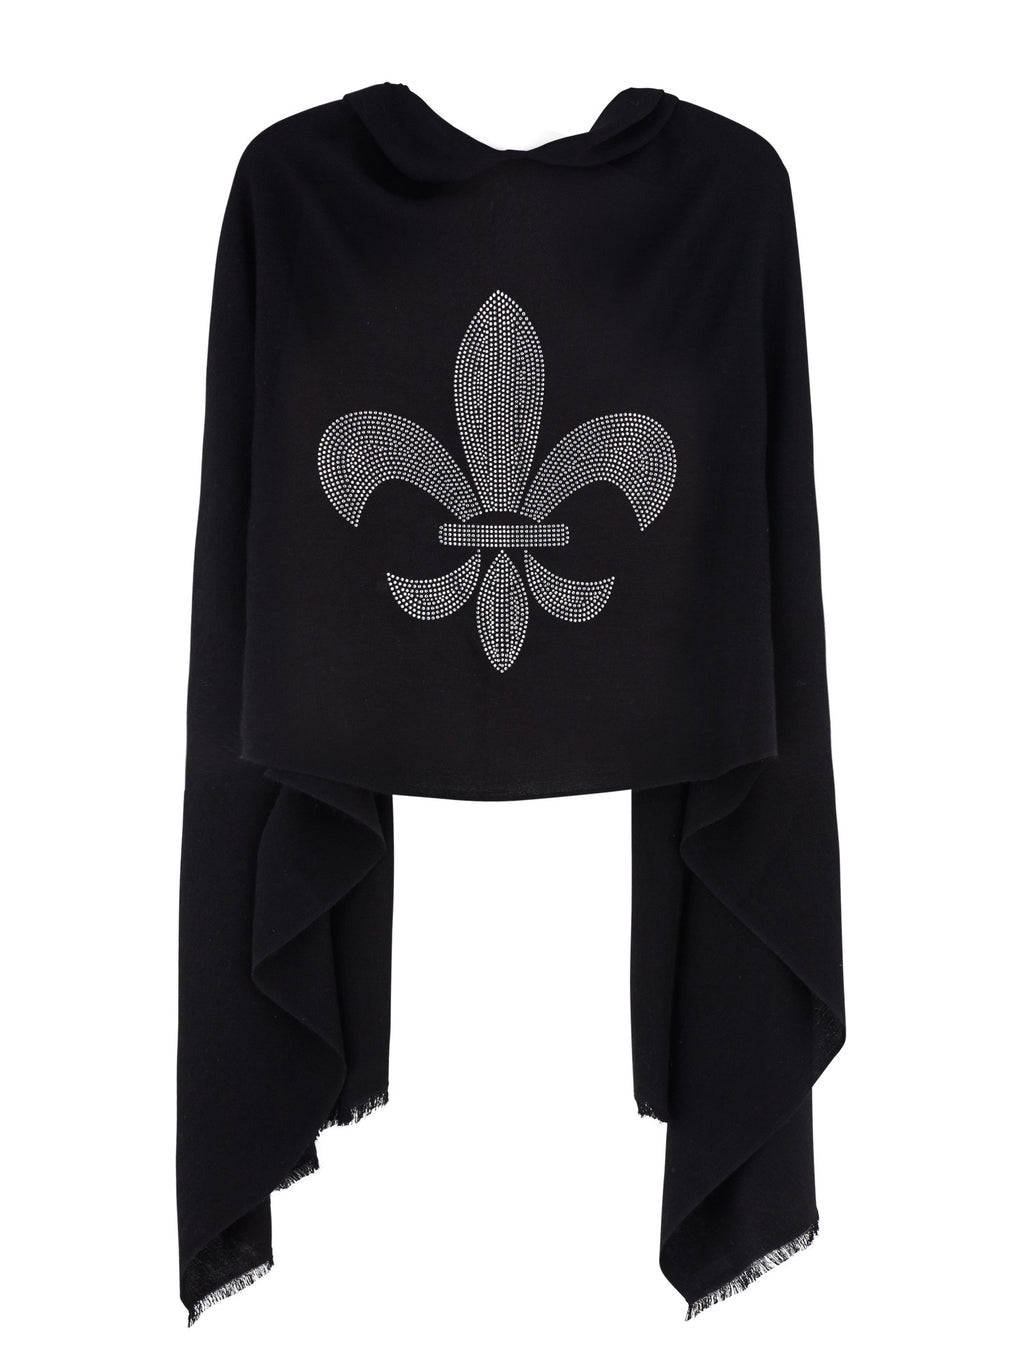 Crystal embellished cashmere pashmina shawl, black with fleur de lys